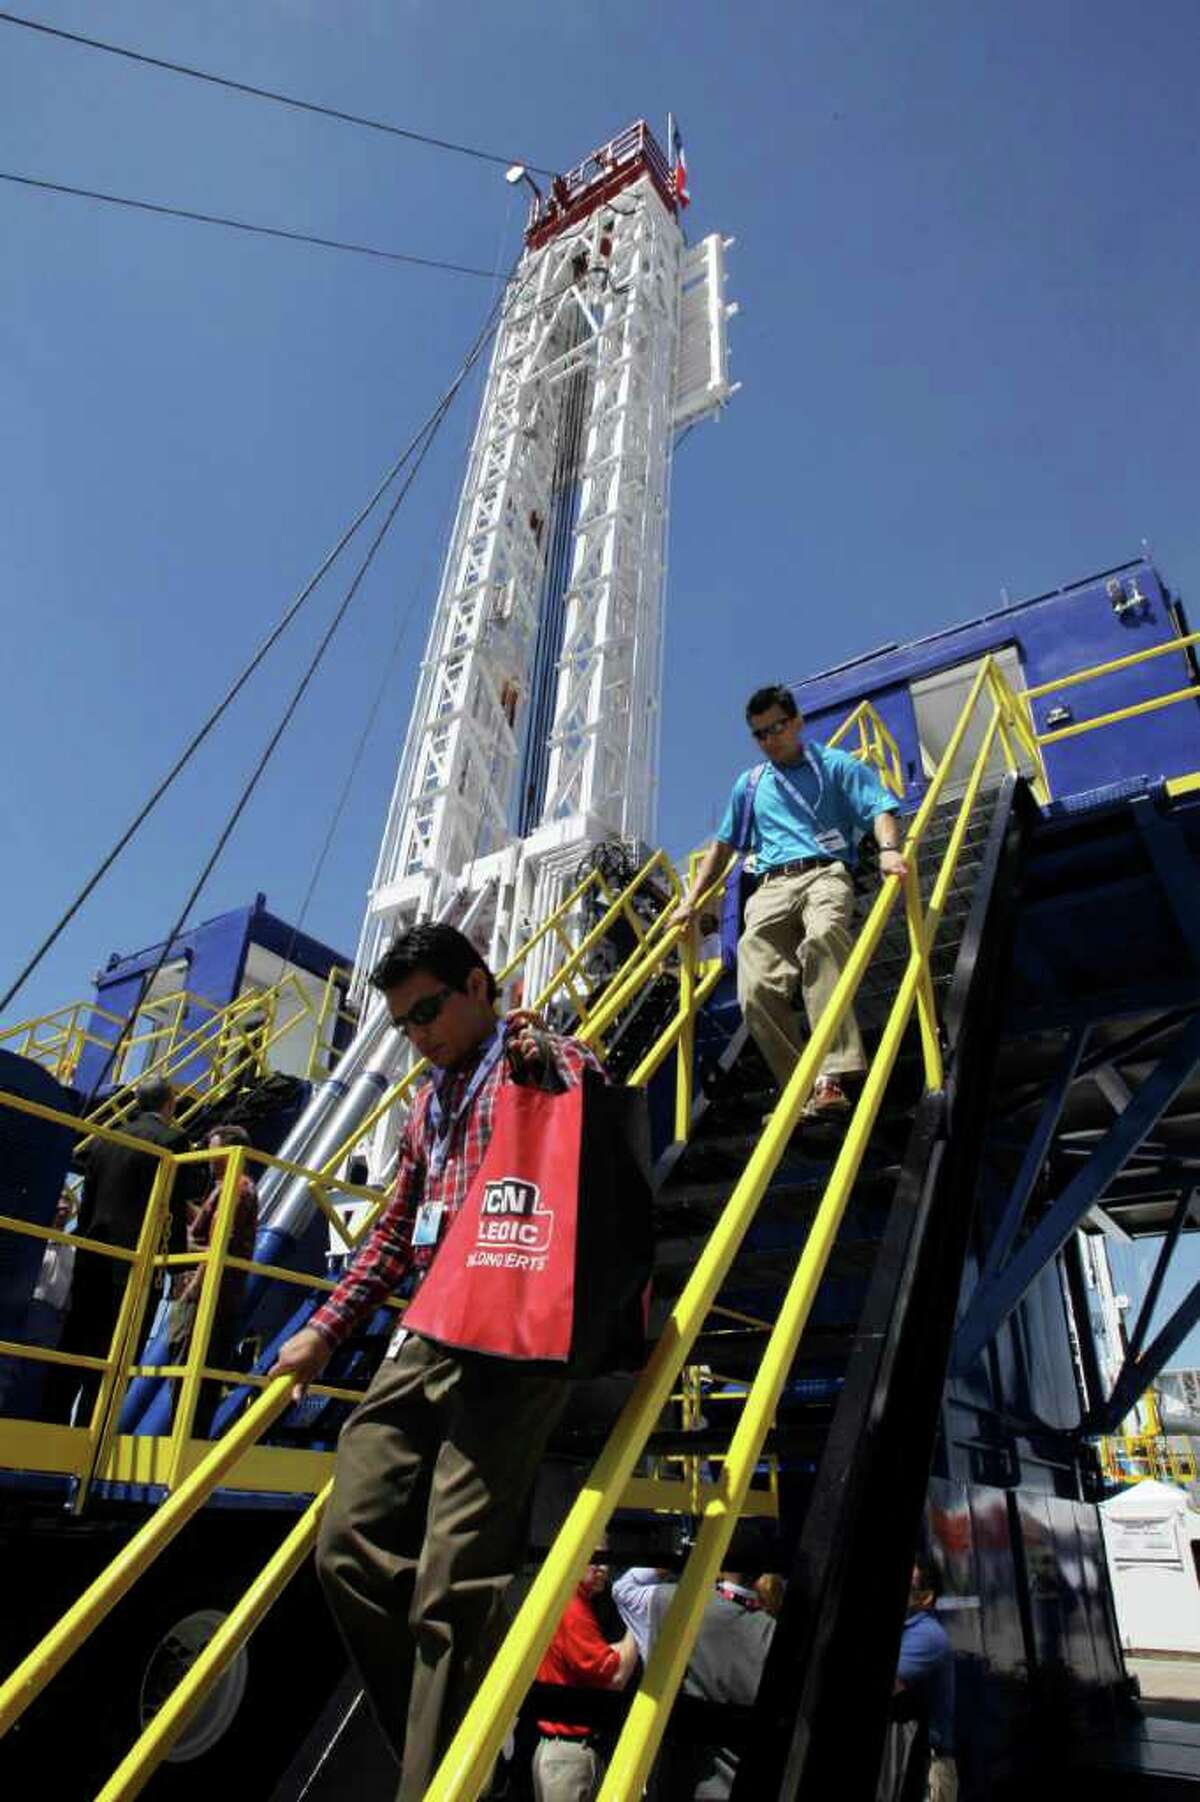 Visitors leave a drilling platform displayed at the annual Offshore Technology Conference Wednesday, May 4, 2011, in Houston. More than 65,000 people and 2,000 exhibitors representing more than 110 countries attend the four day conference.